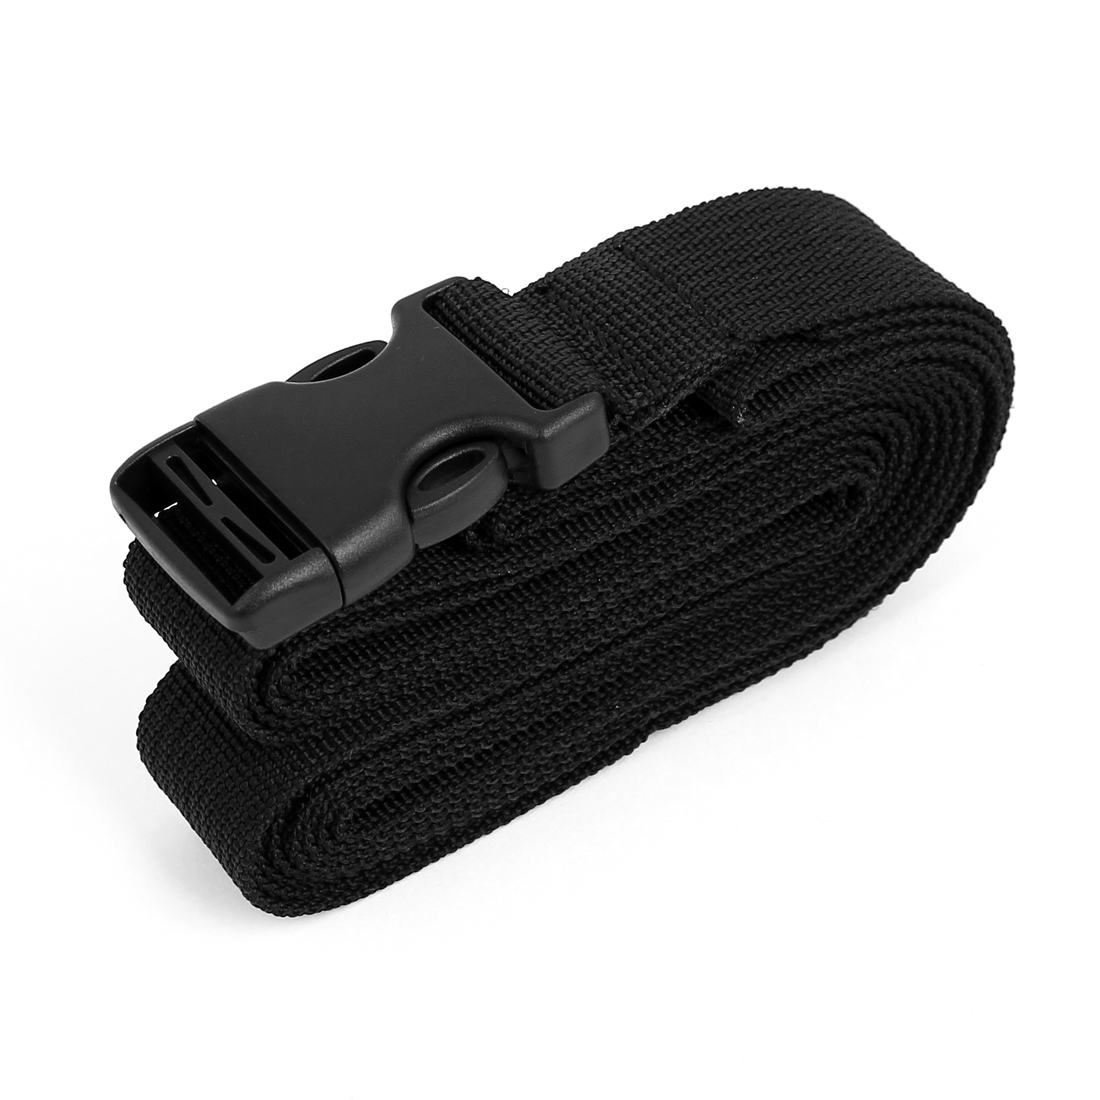 Side Release Buckle Luggage Suitcase Backpack Baggage Adjustable Belt Strap Black 1.5M x 25mm